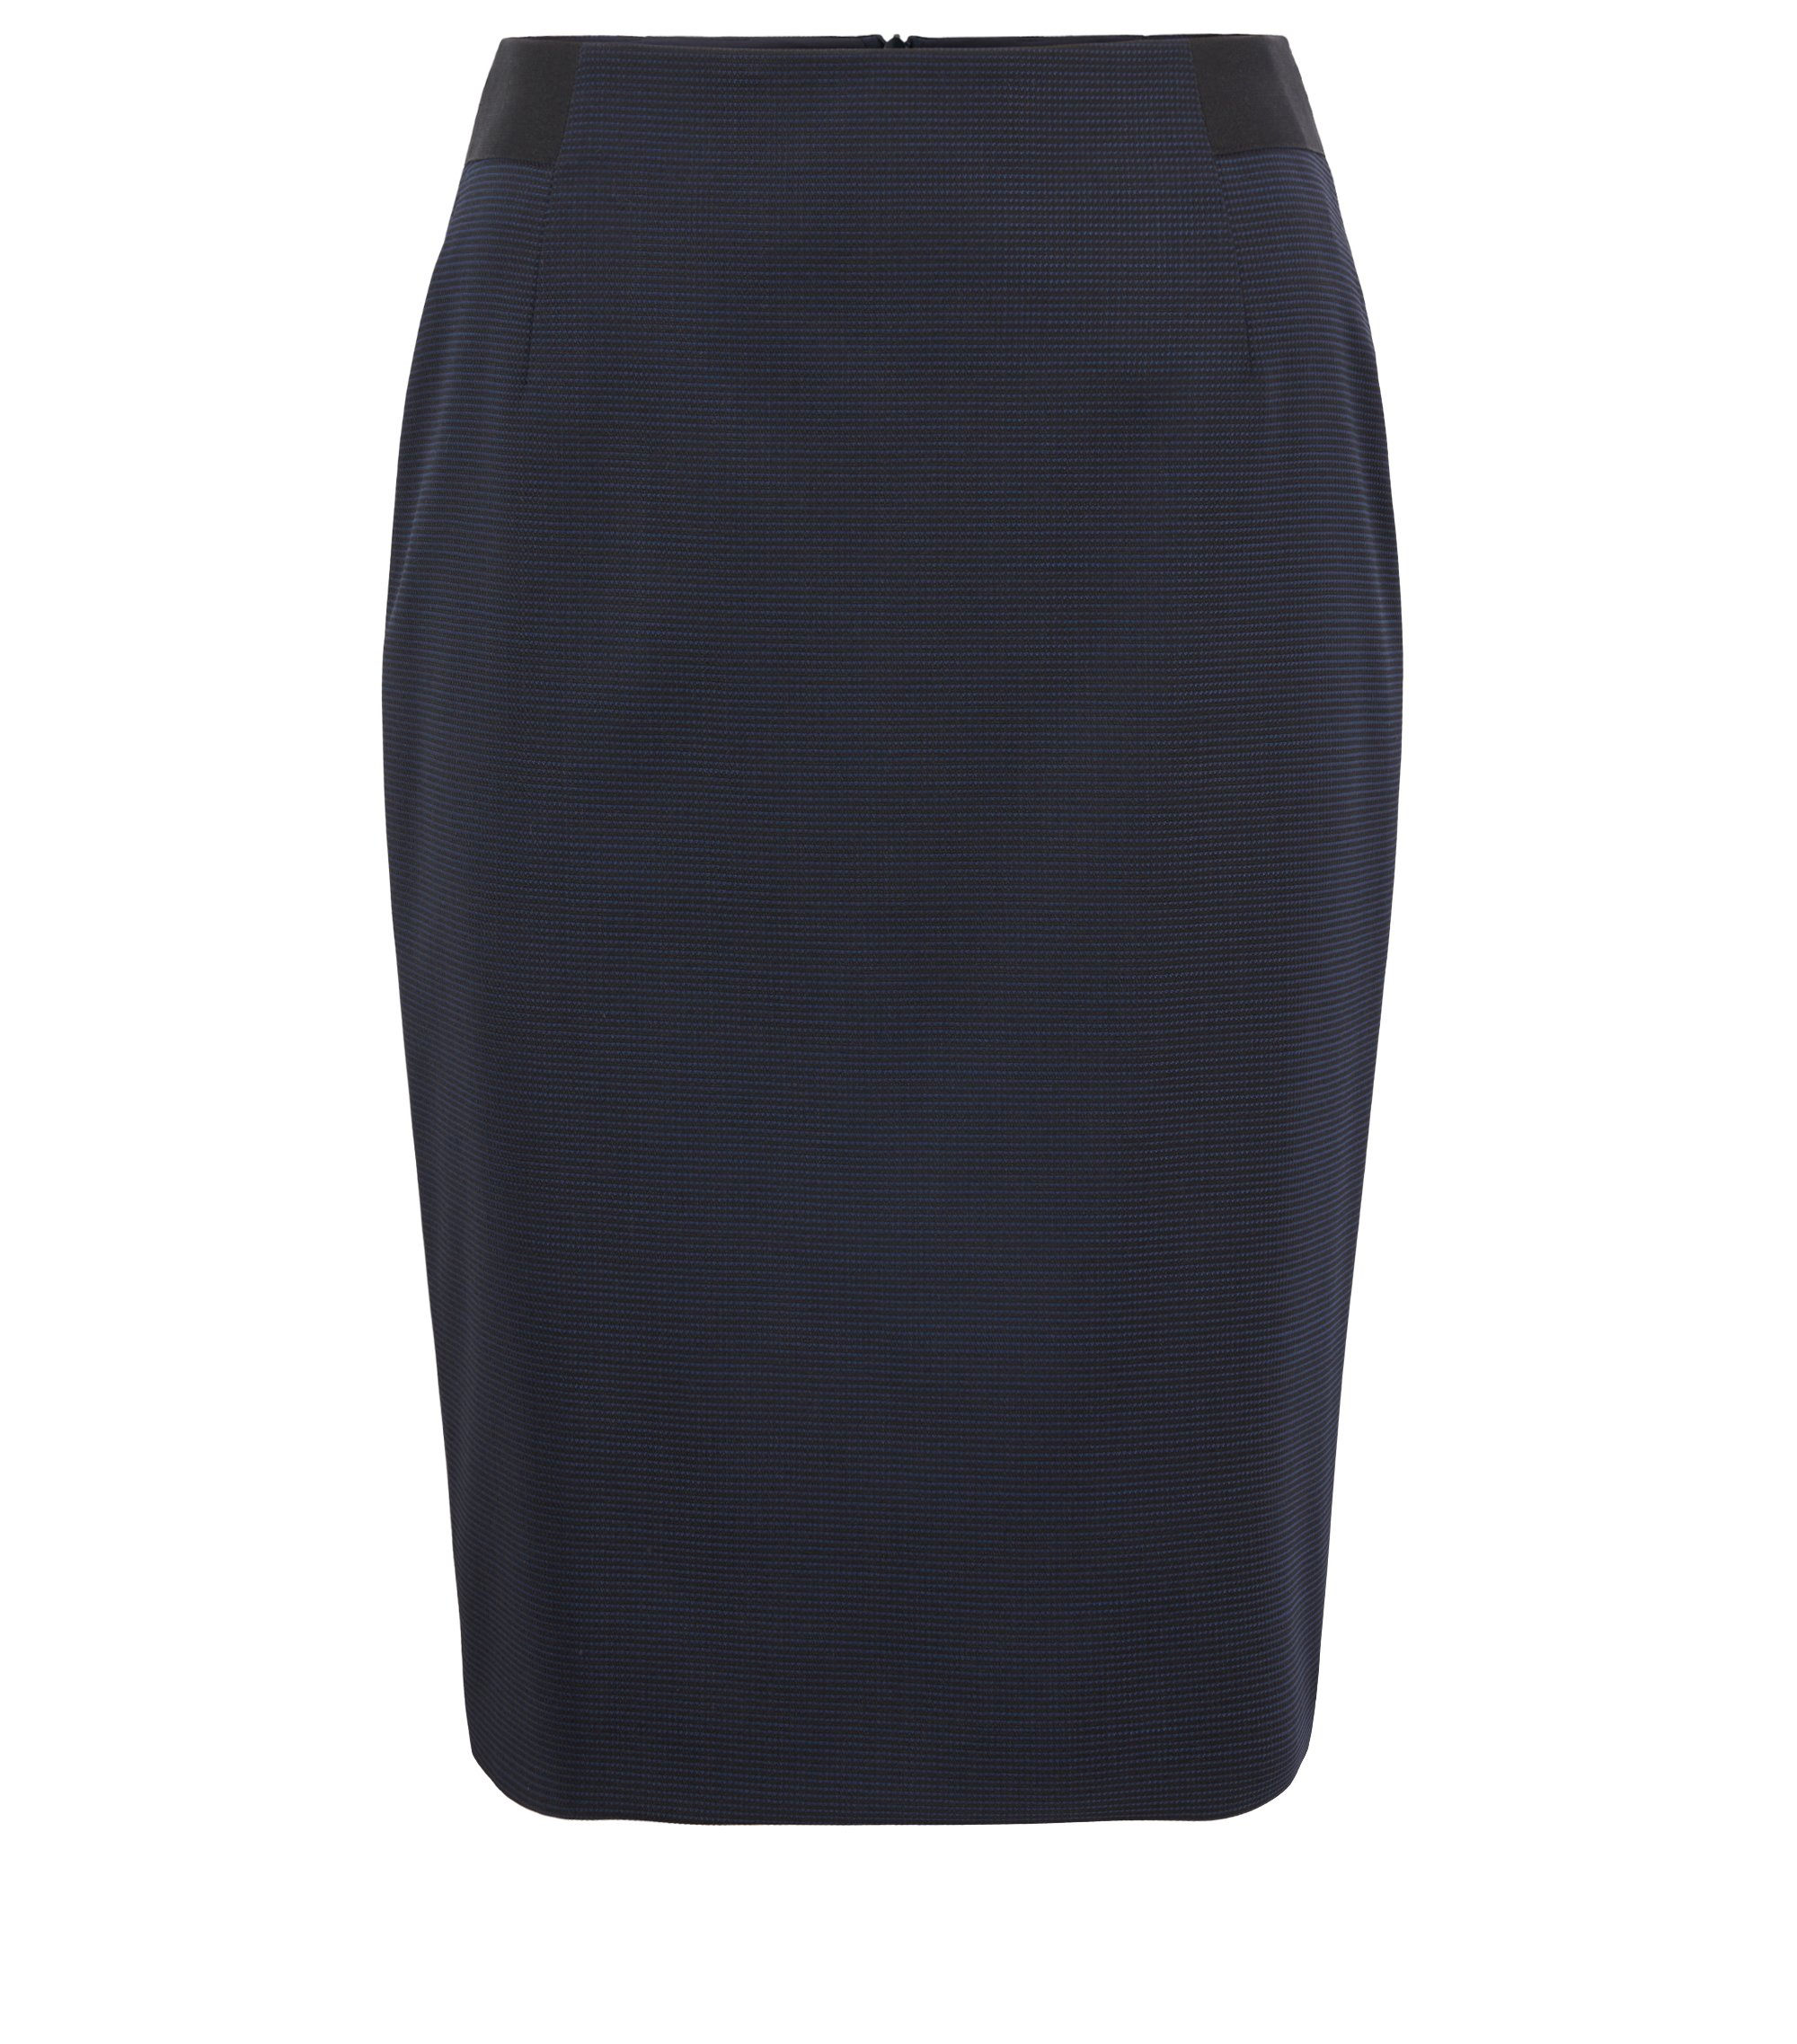 Micro-pattern pencil skirt in Italian stretch virgin wool, Patterned